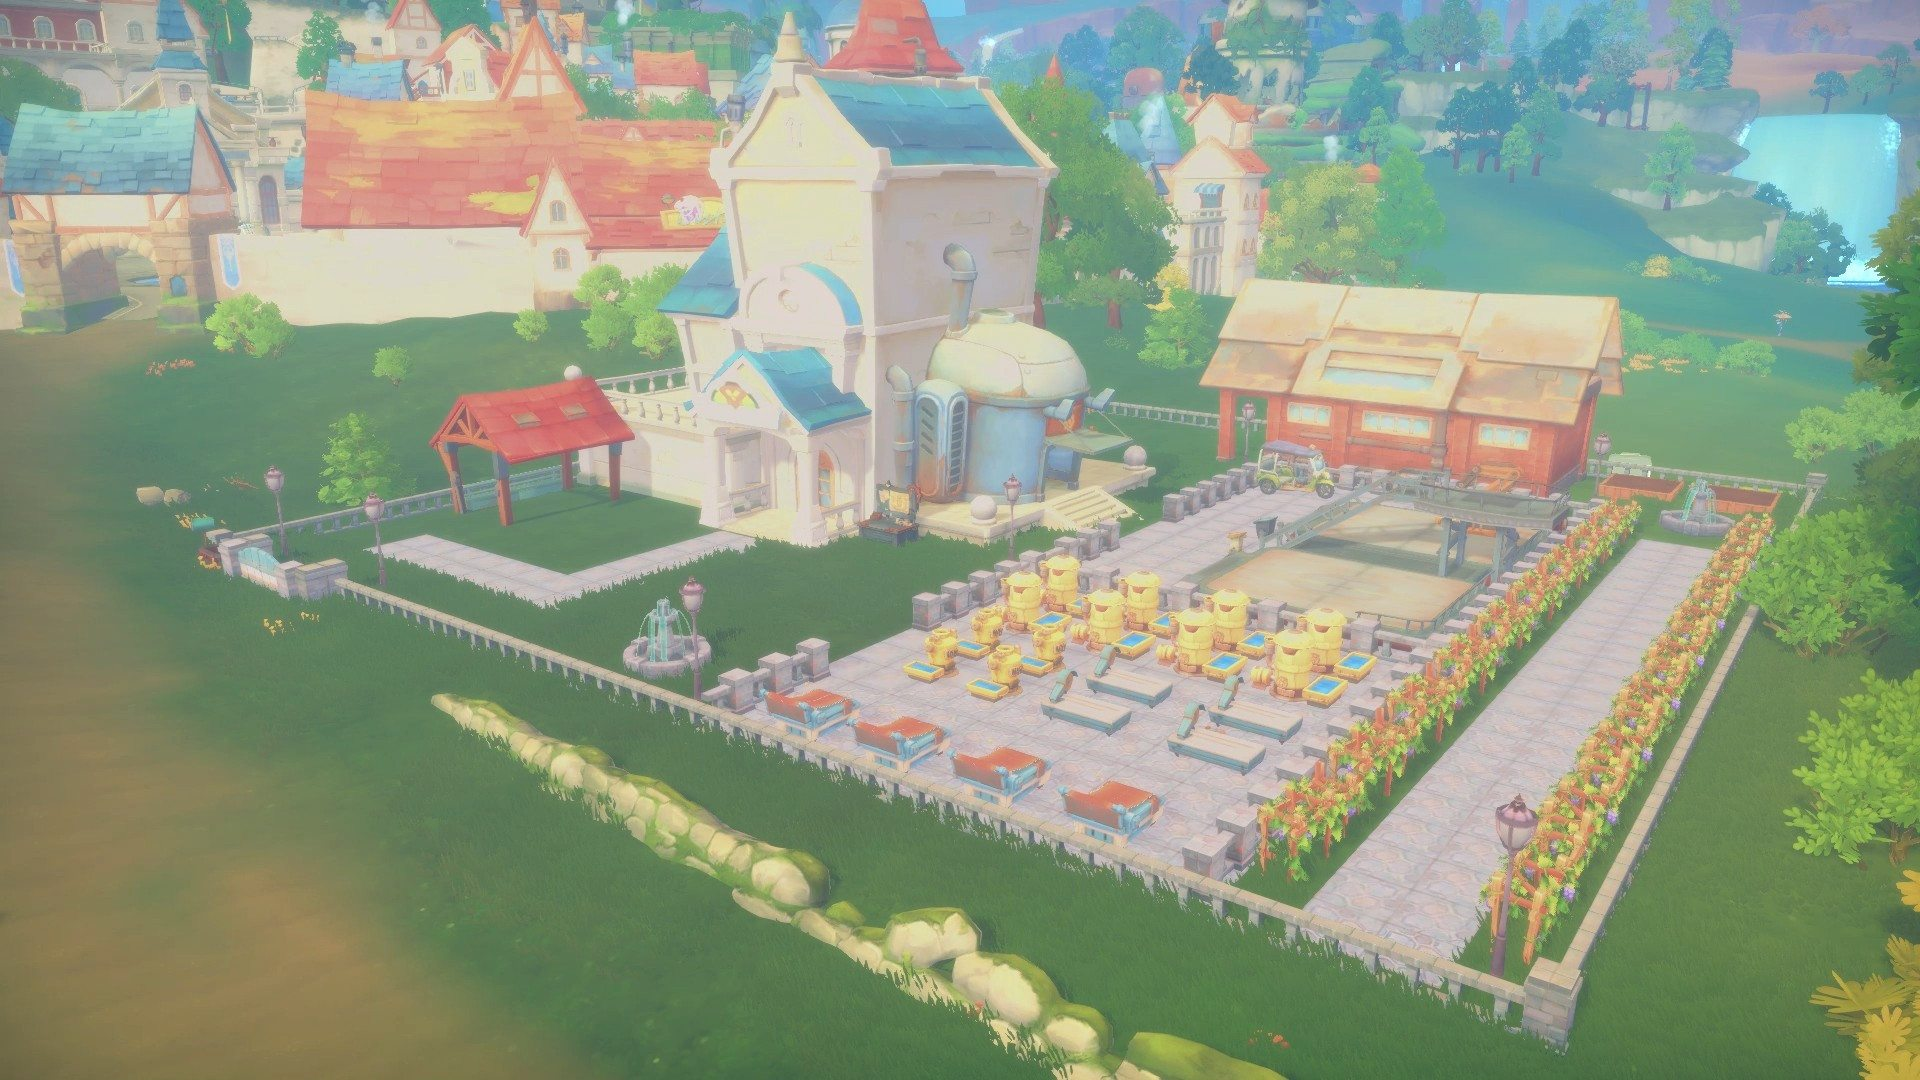 My Time at Portia: Pre-order, Discount, Release Date, And More